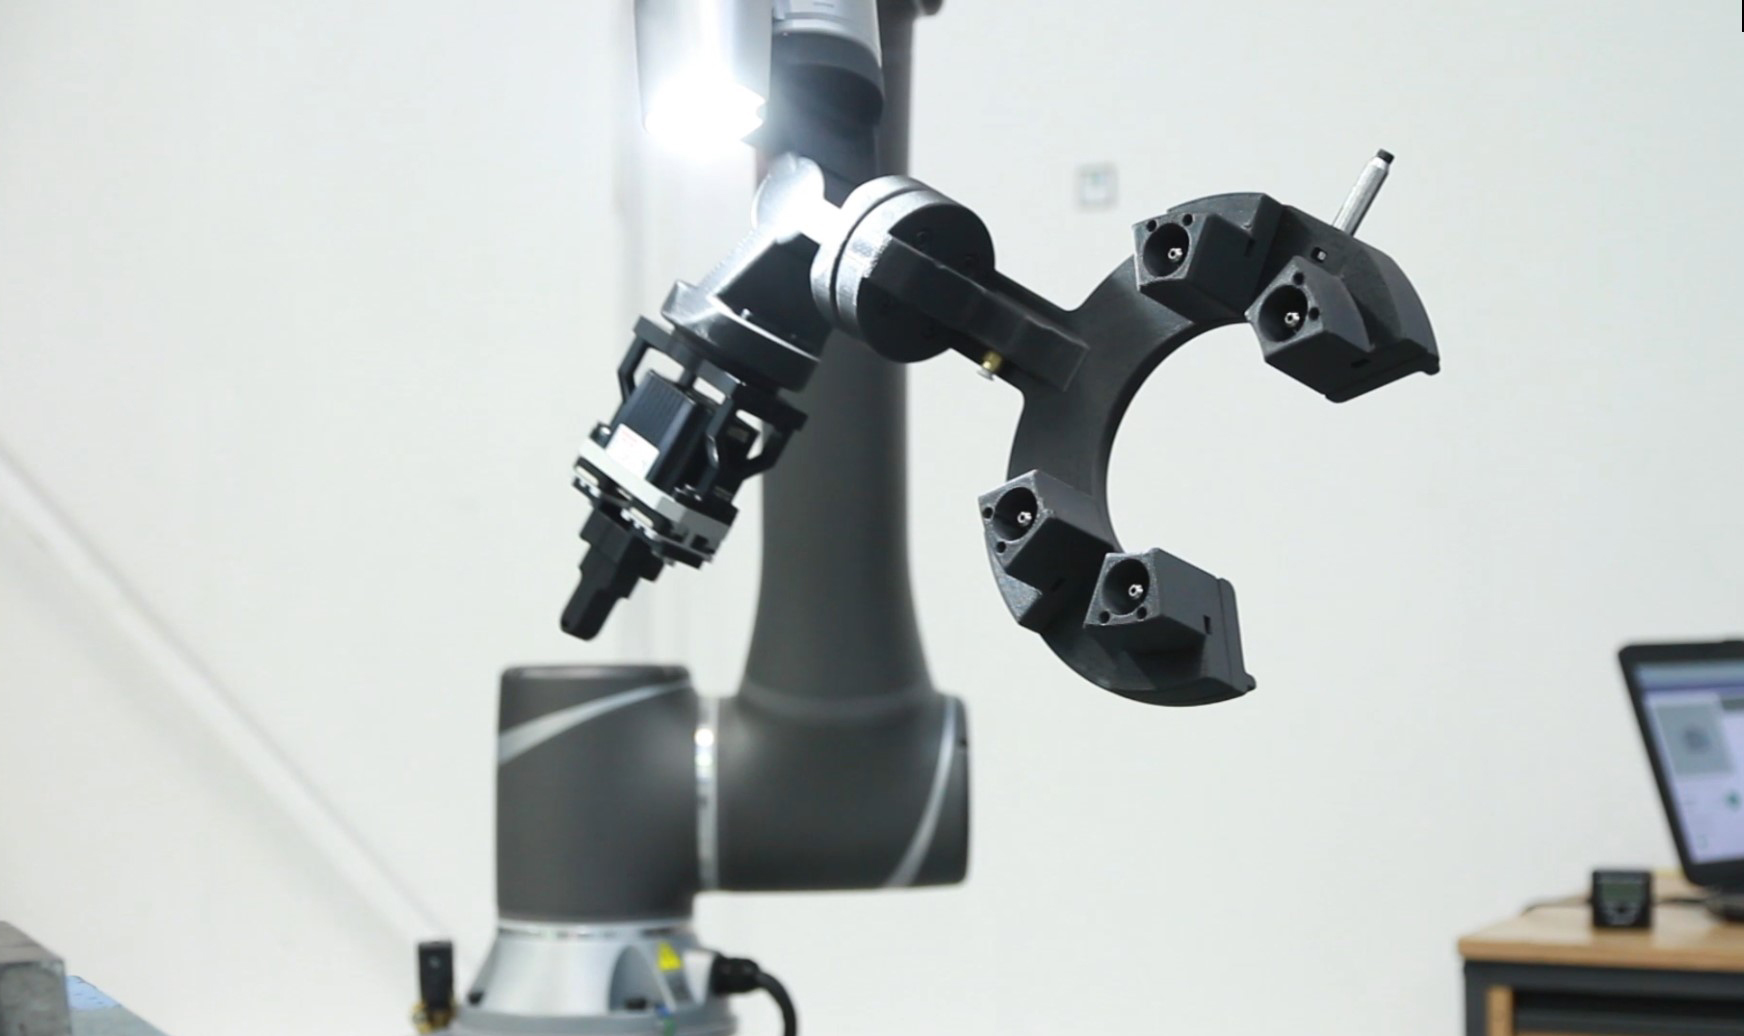 End-of-arm tooling produced on the Fortus 380CF in action on a robotic arm.